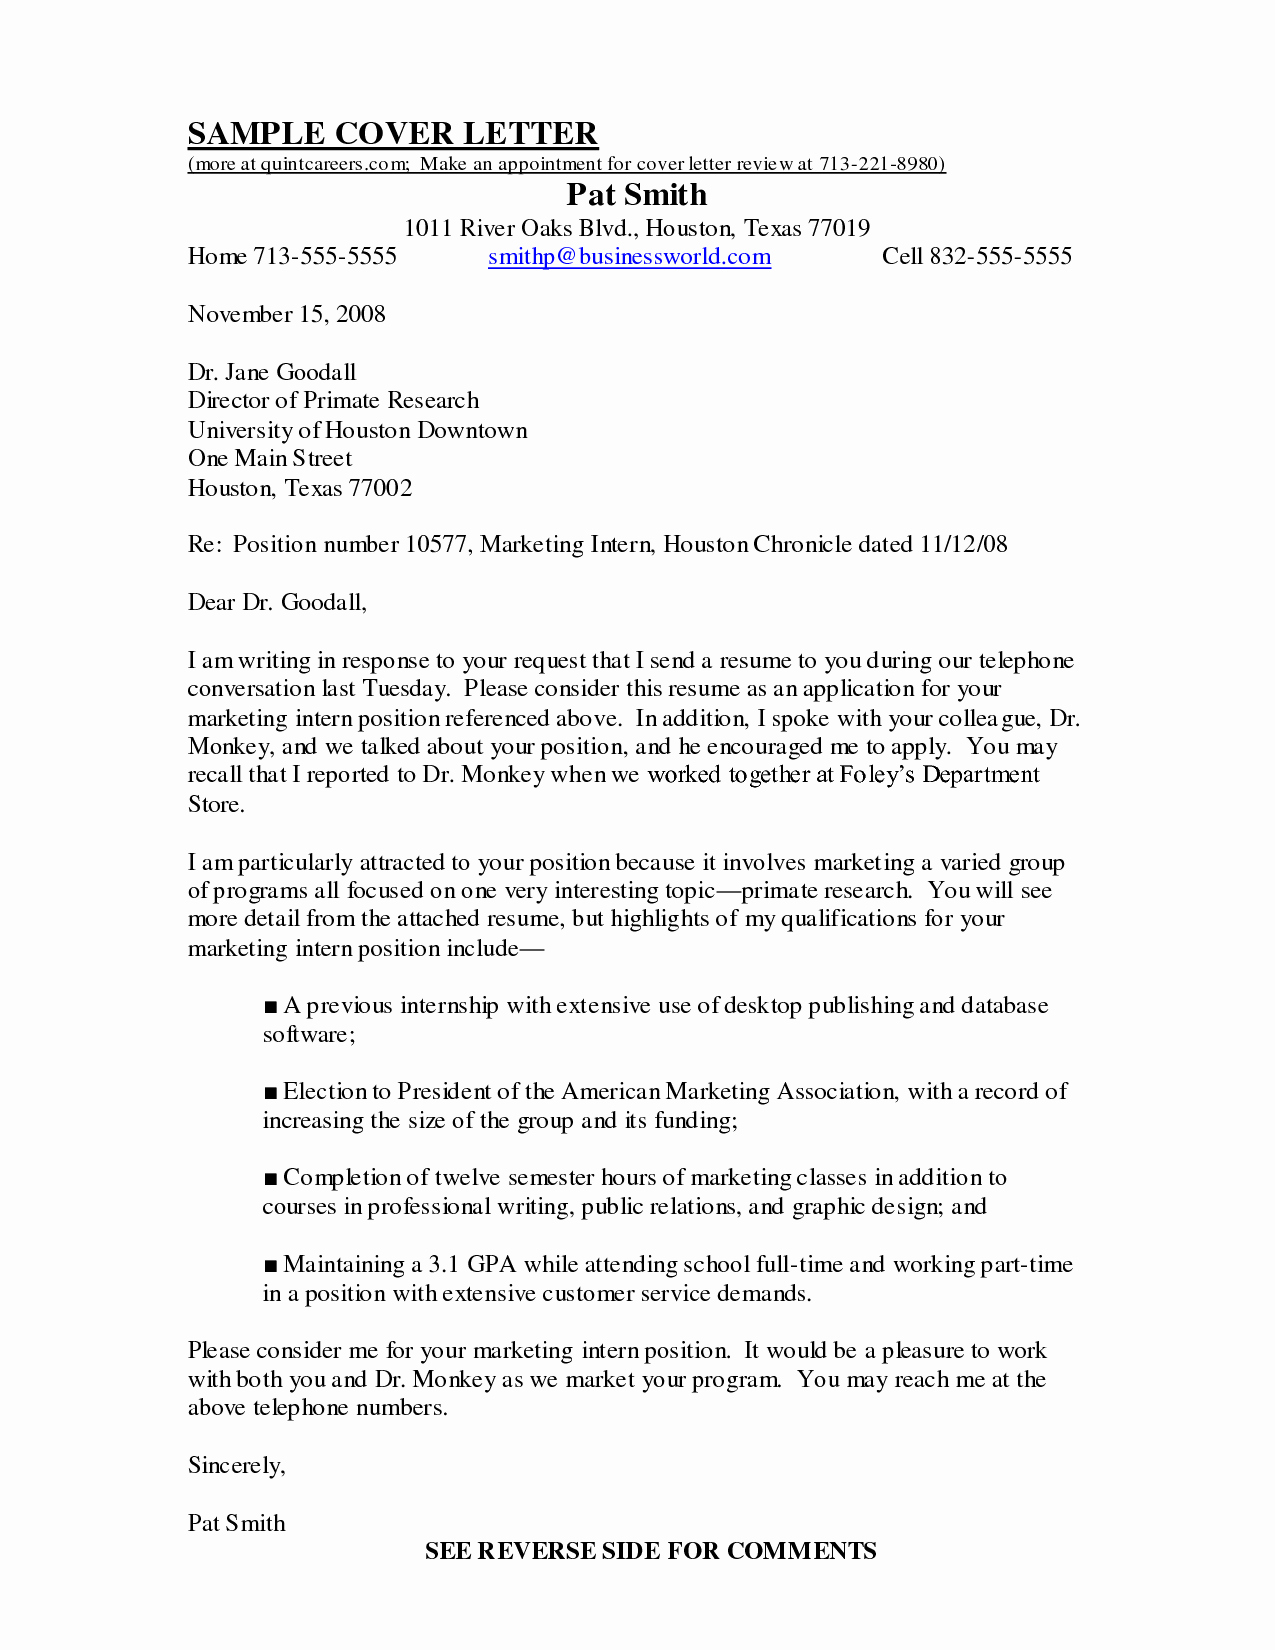 Upwork Cover Letter Template - Sample Cover Letter Template Best if I Apply to More Than E